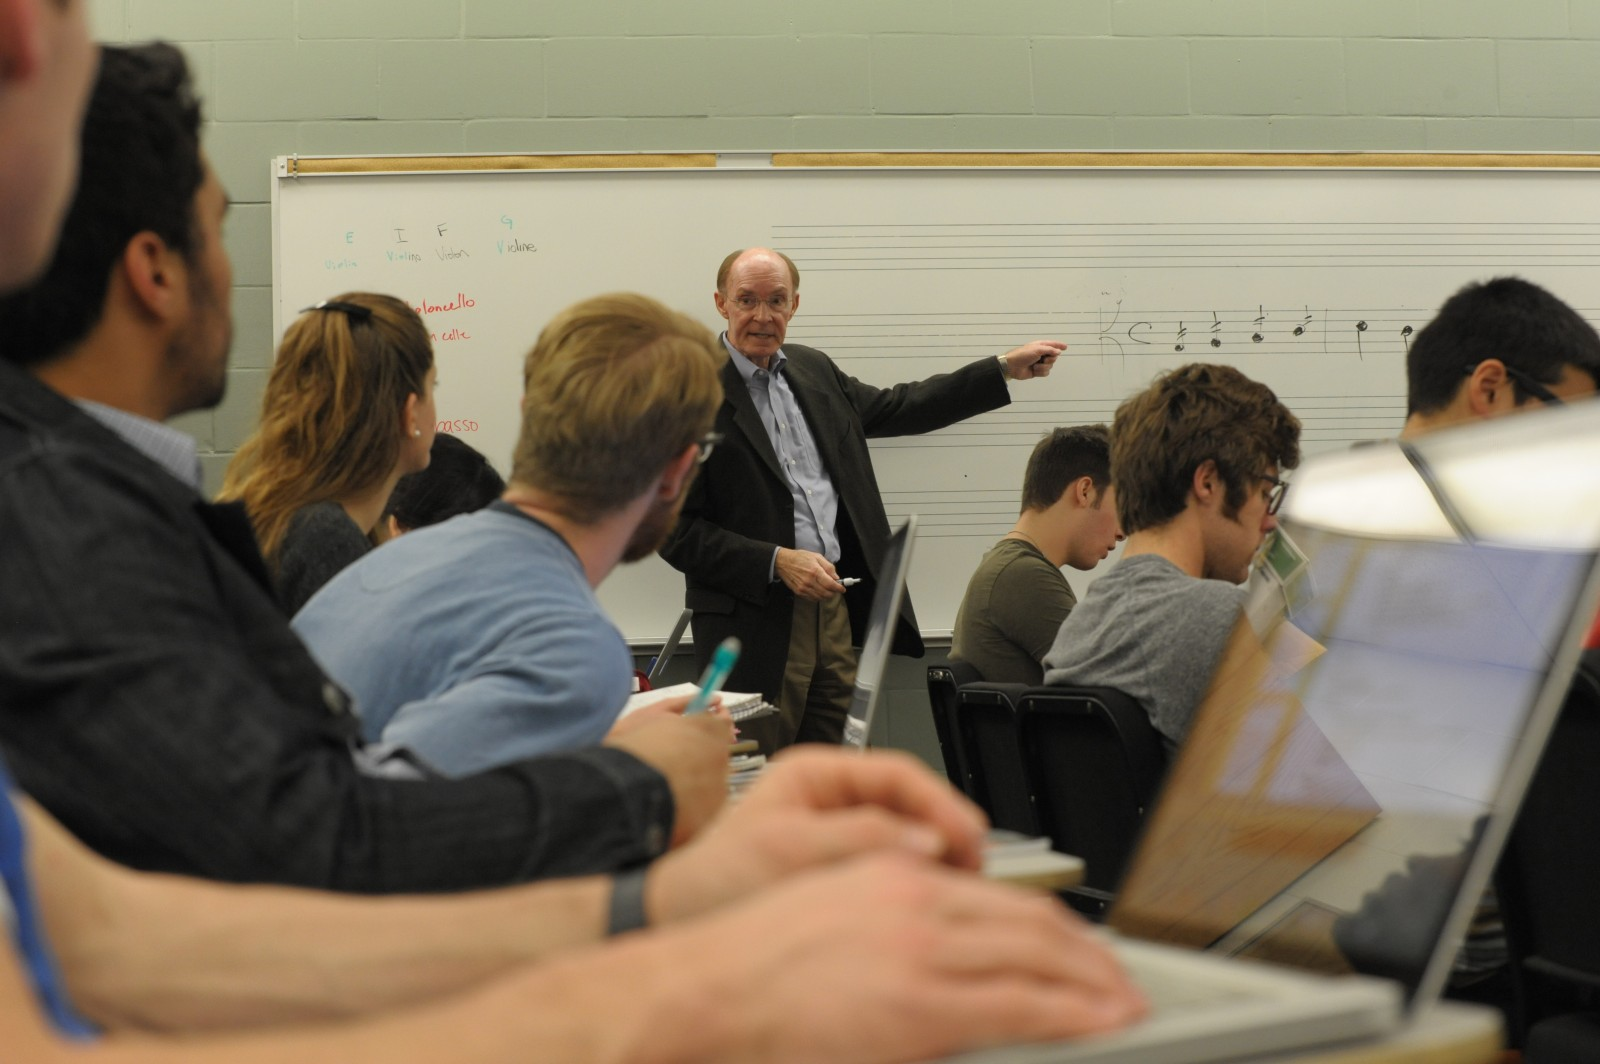 The Department of Music Studies prepares students to be complete musicians.